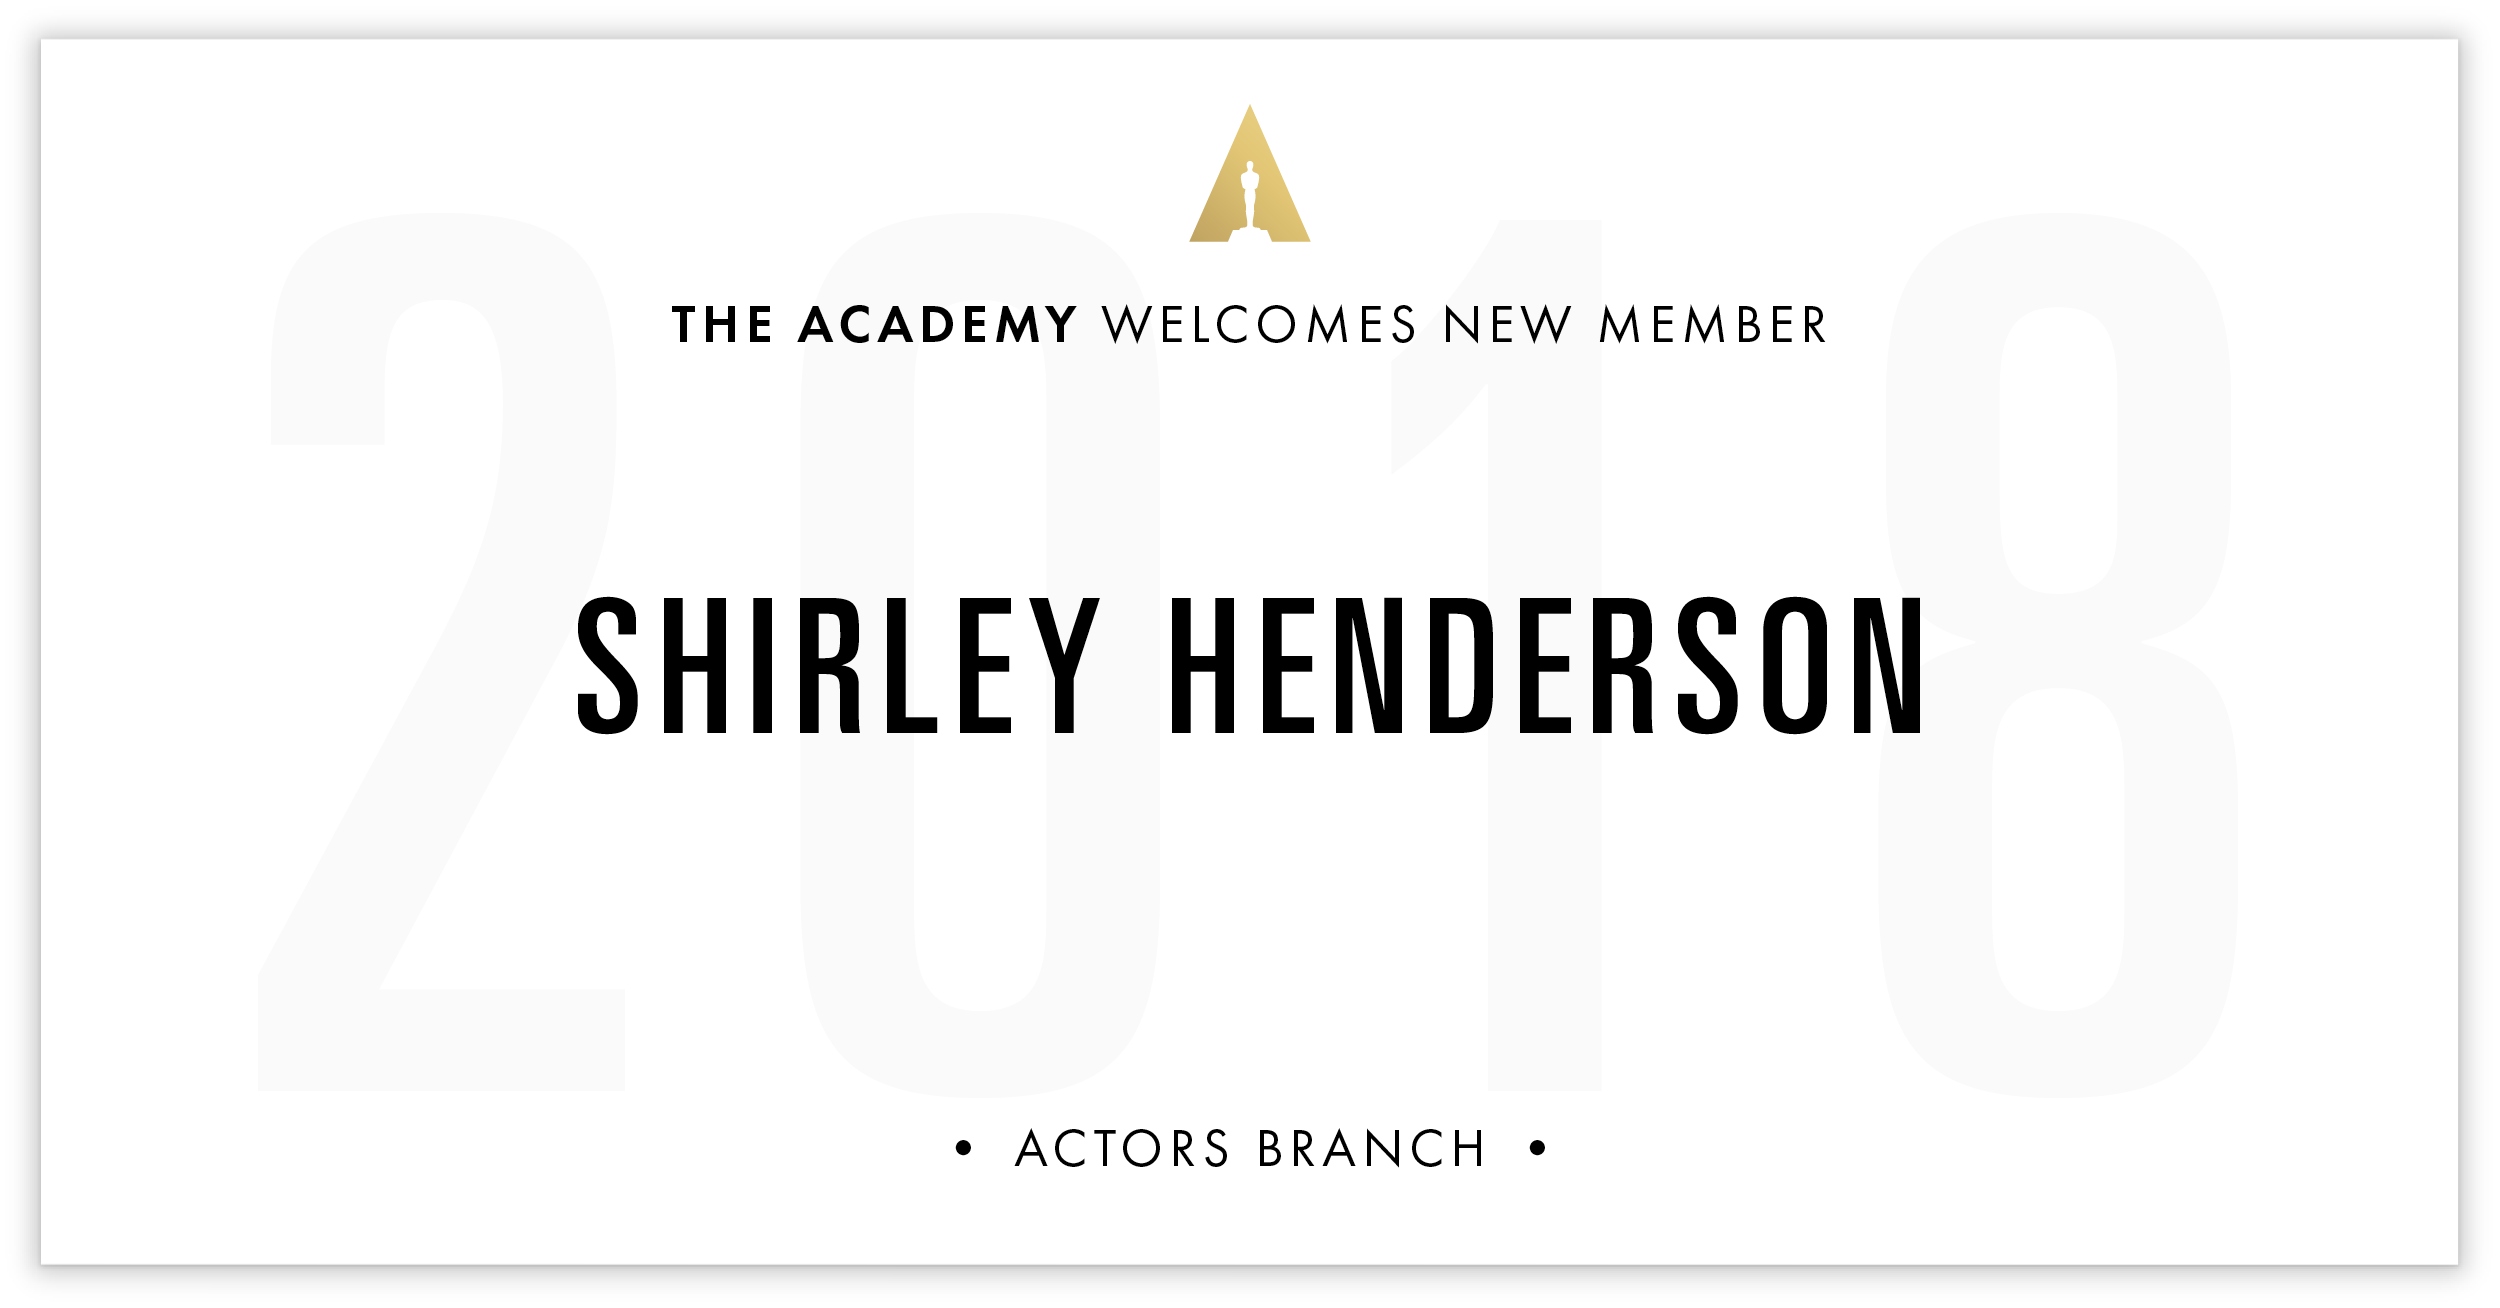 Shirley Henderson is invited!